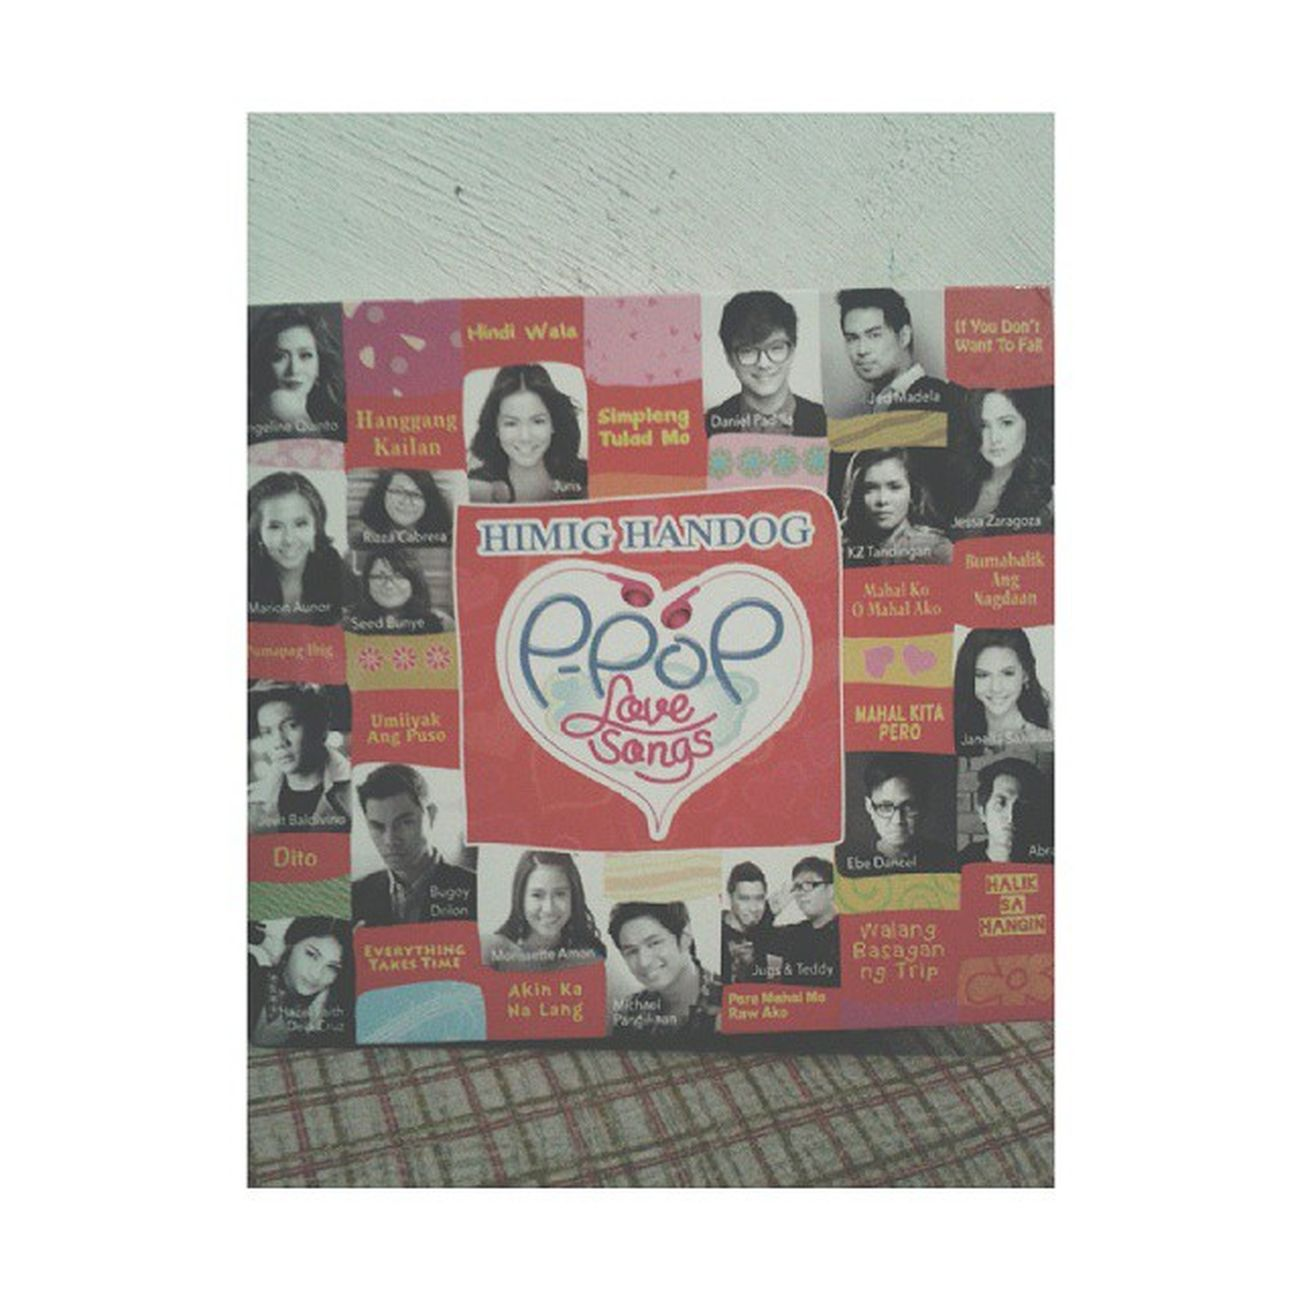 Yey! Got my copy na. Hehe. Salamat kay Ate Melba. ????? Himighandogppoplovesongs2014